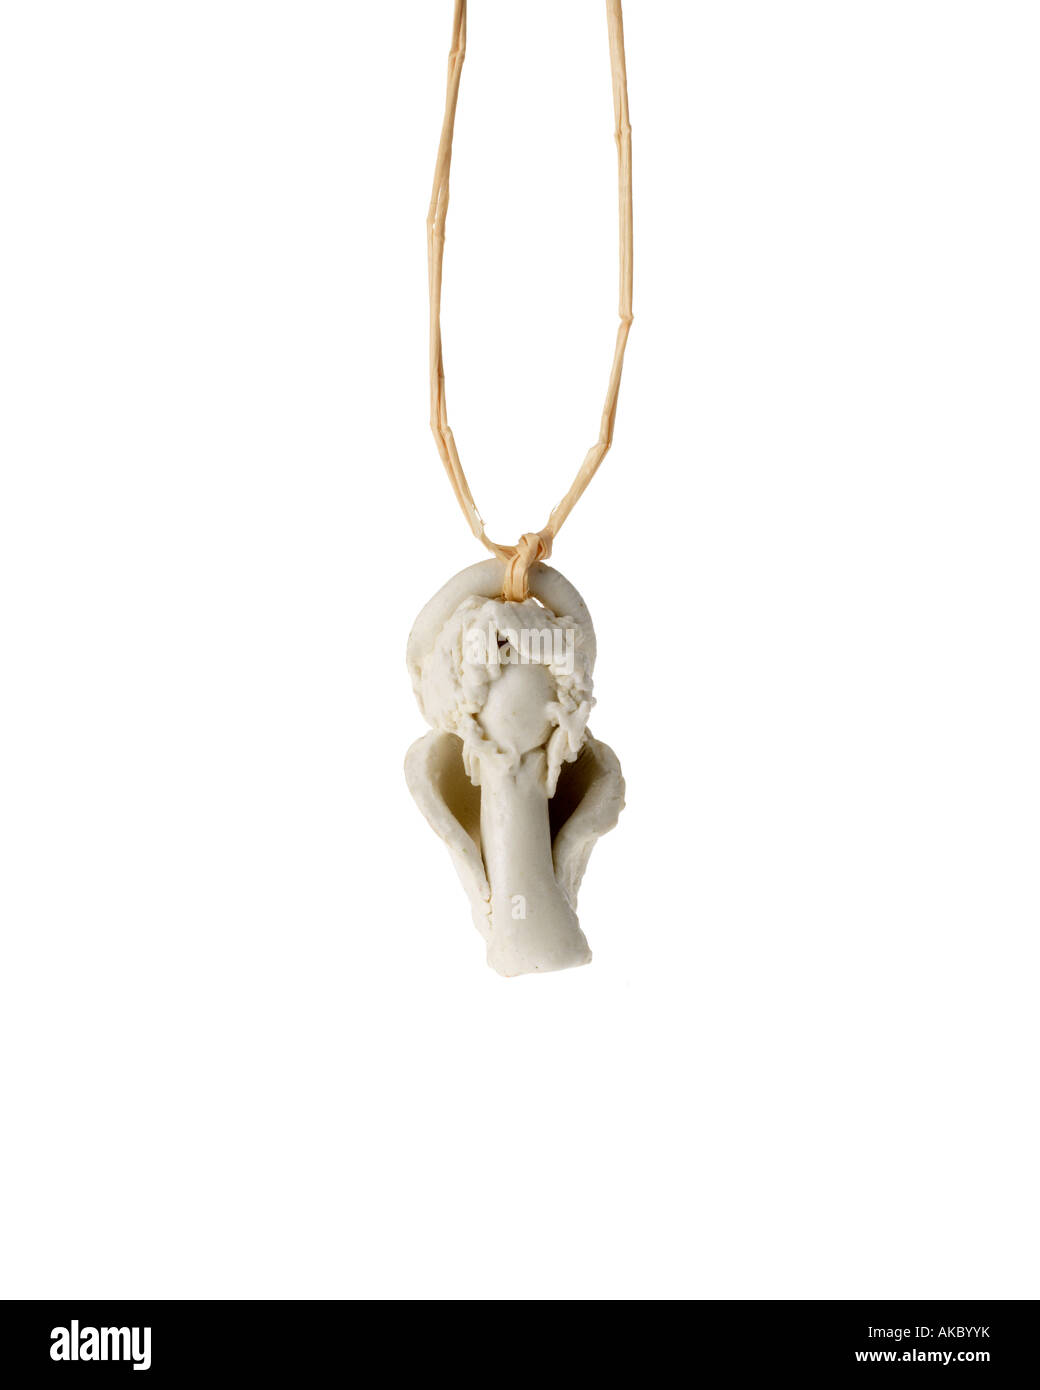 Christmas angel ornament hanging on cord - Stock Image